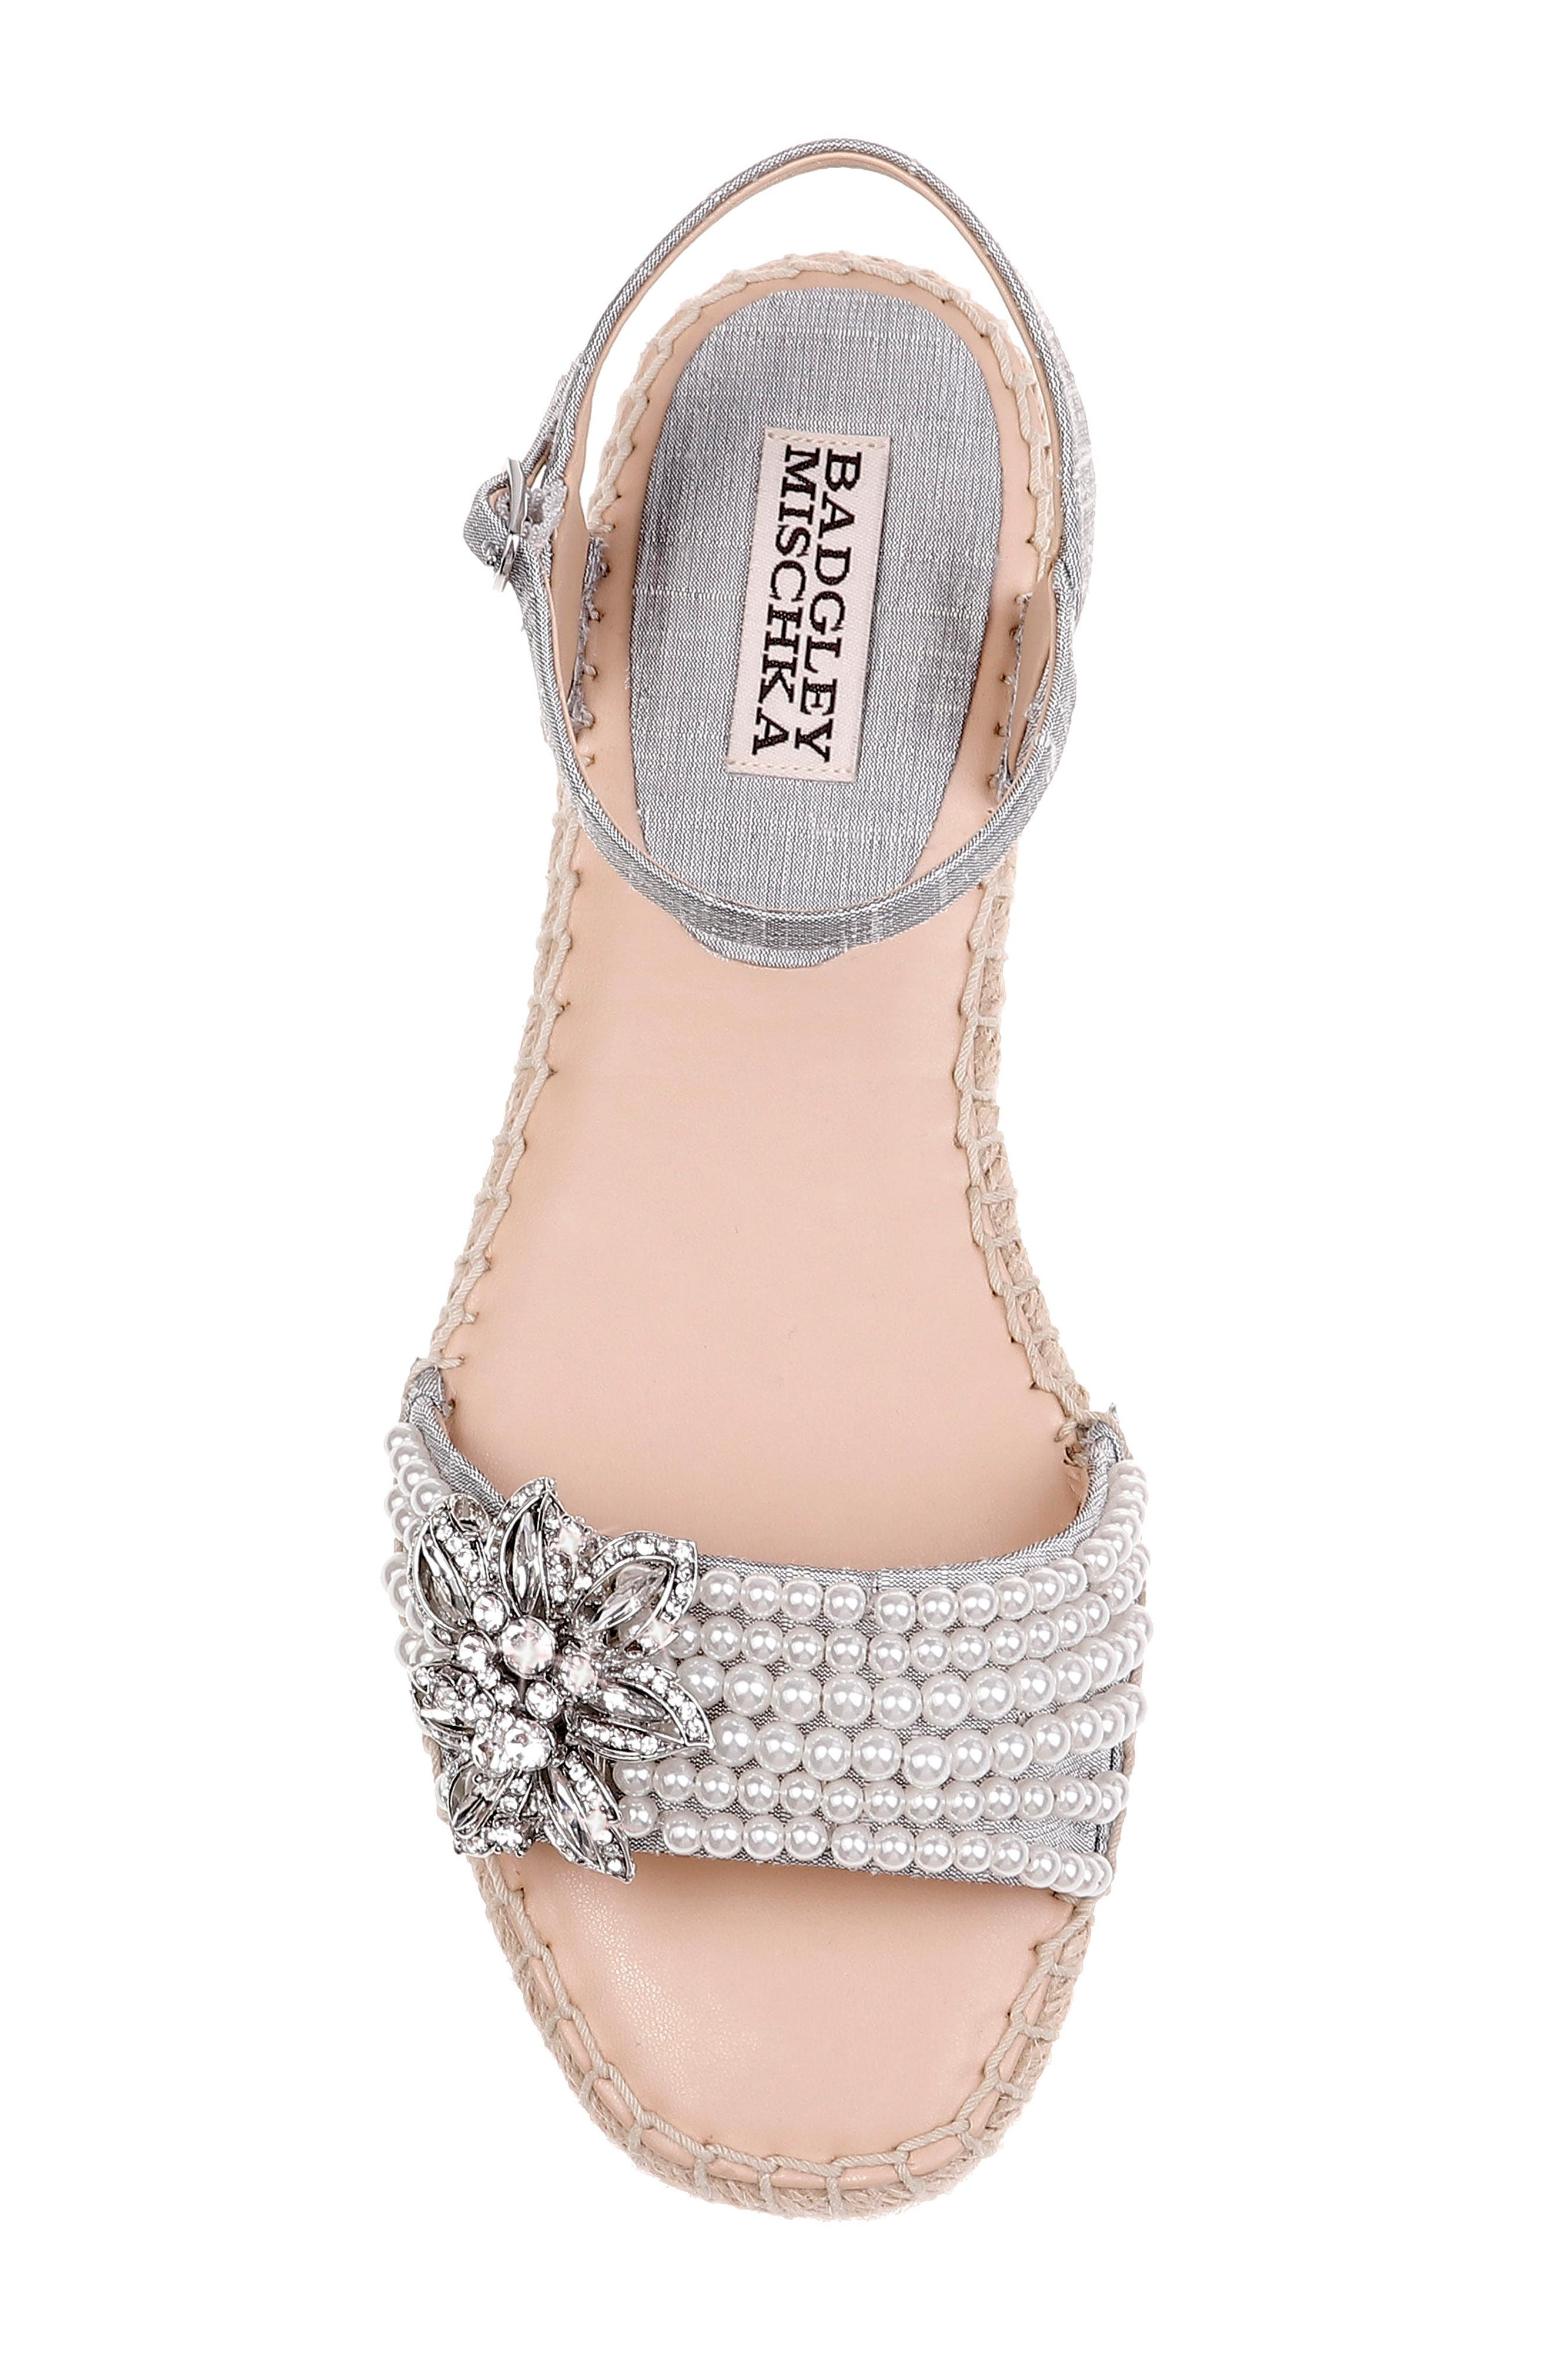 Badgley Mischka Leandra Espadrille Sandal,                             Alternate thumbnail 5, color,                             SILVER FABRIC